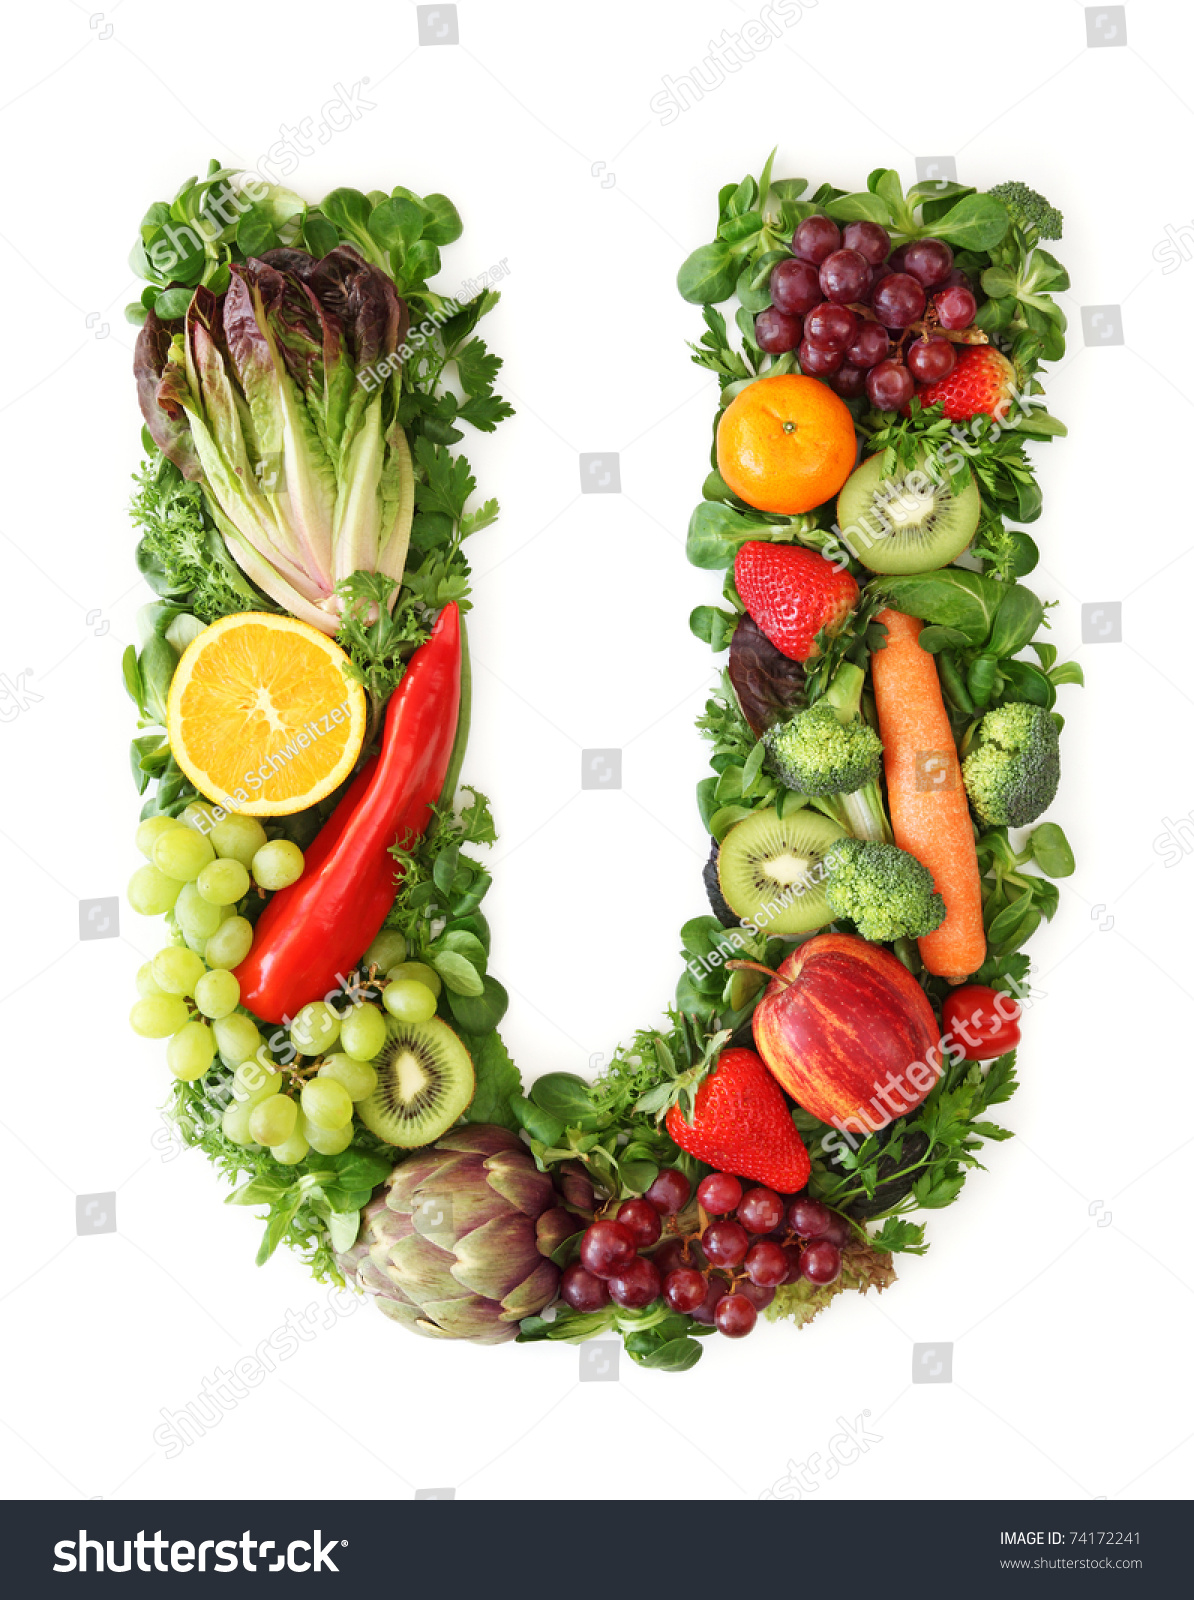 Vegetable Beginning With The Letter S